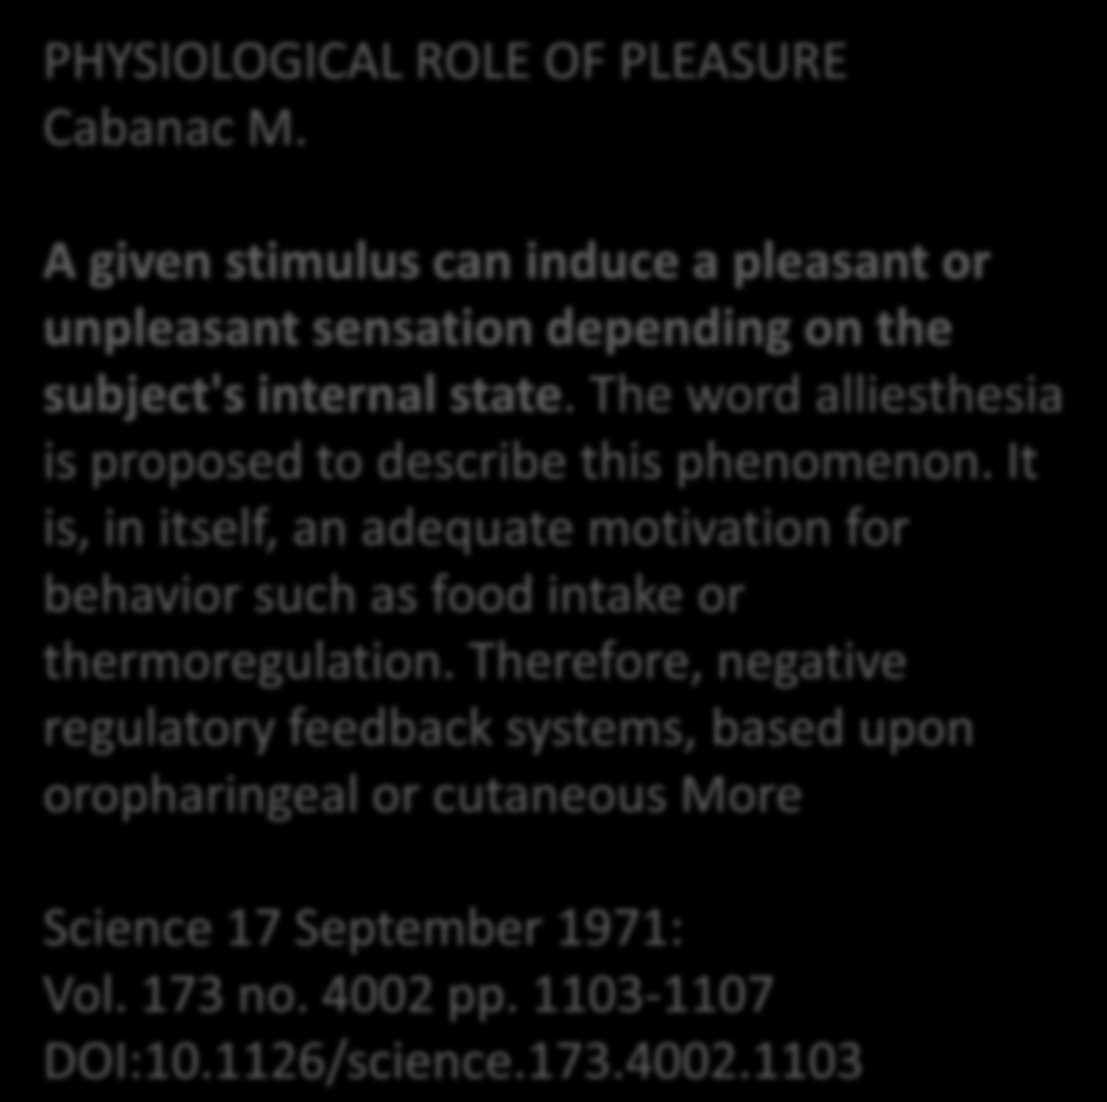 PHYSIOLOGICAL ROLE OF PLEASURE Cabanac M.